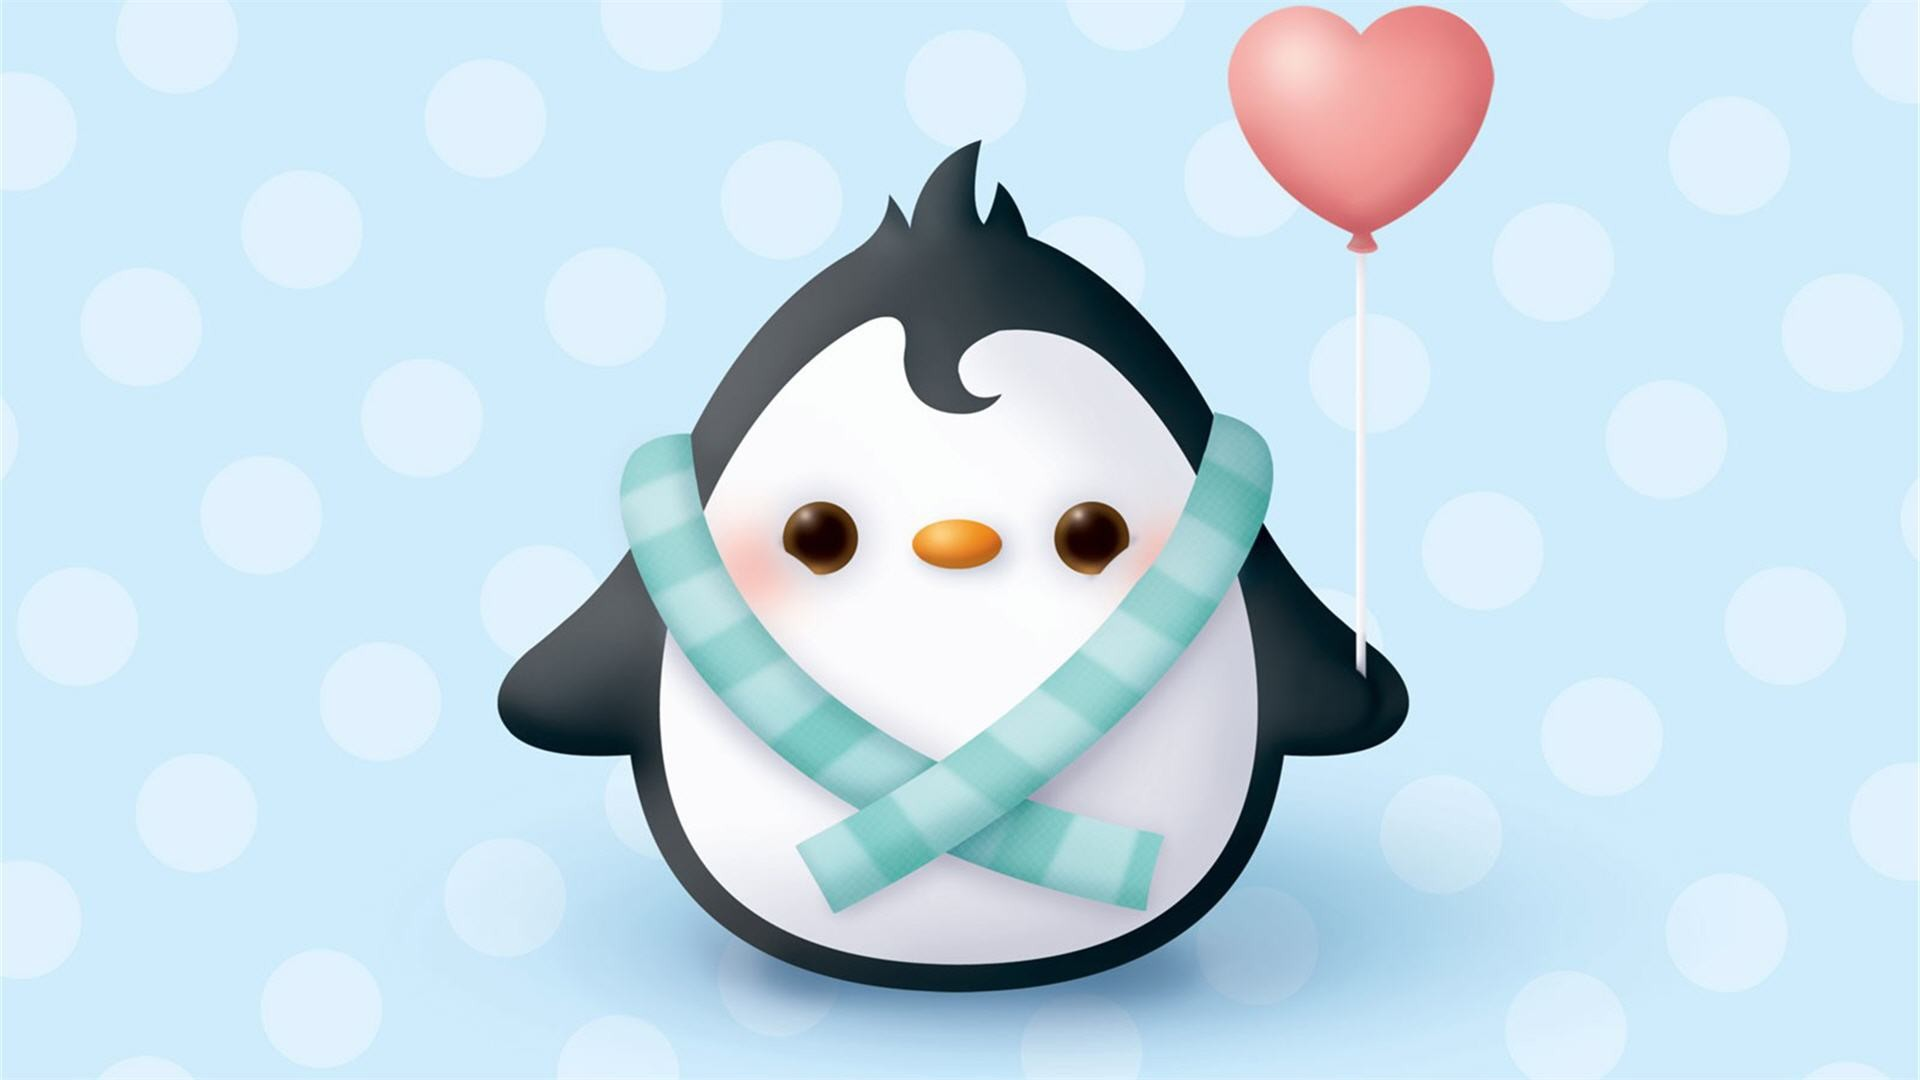 Cute Animated Penguins Wallpaper – ClipArt Best